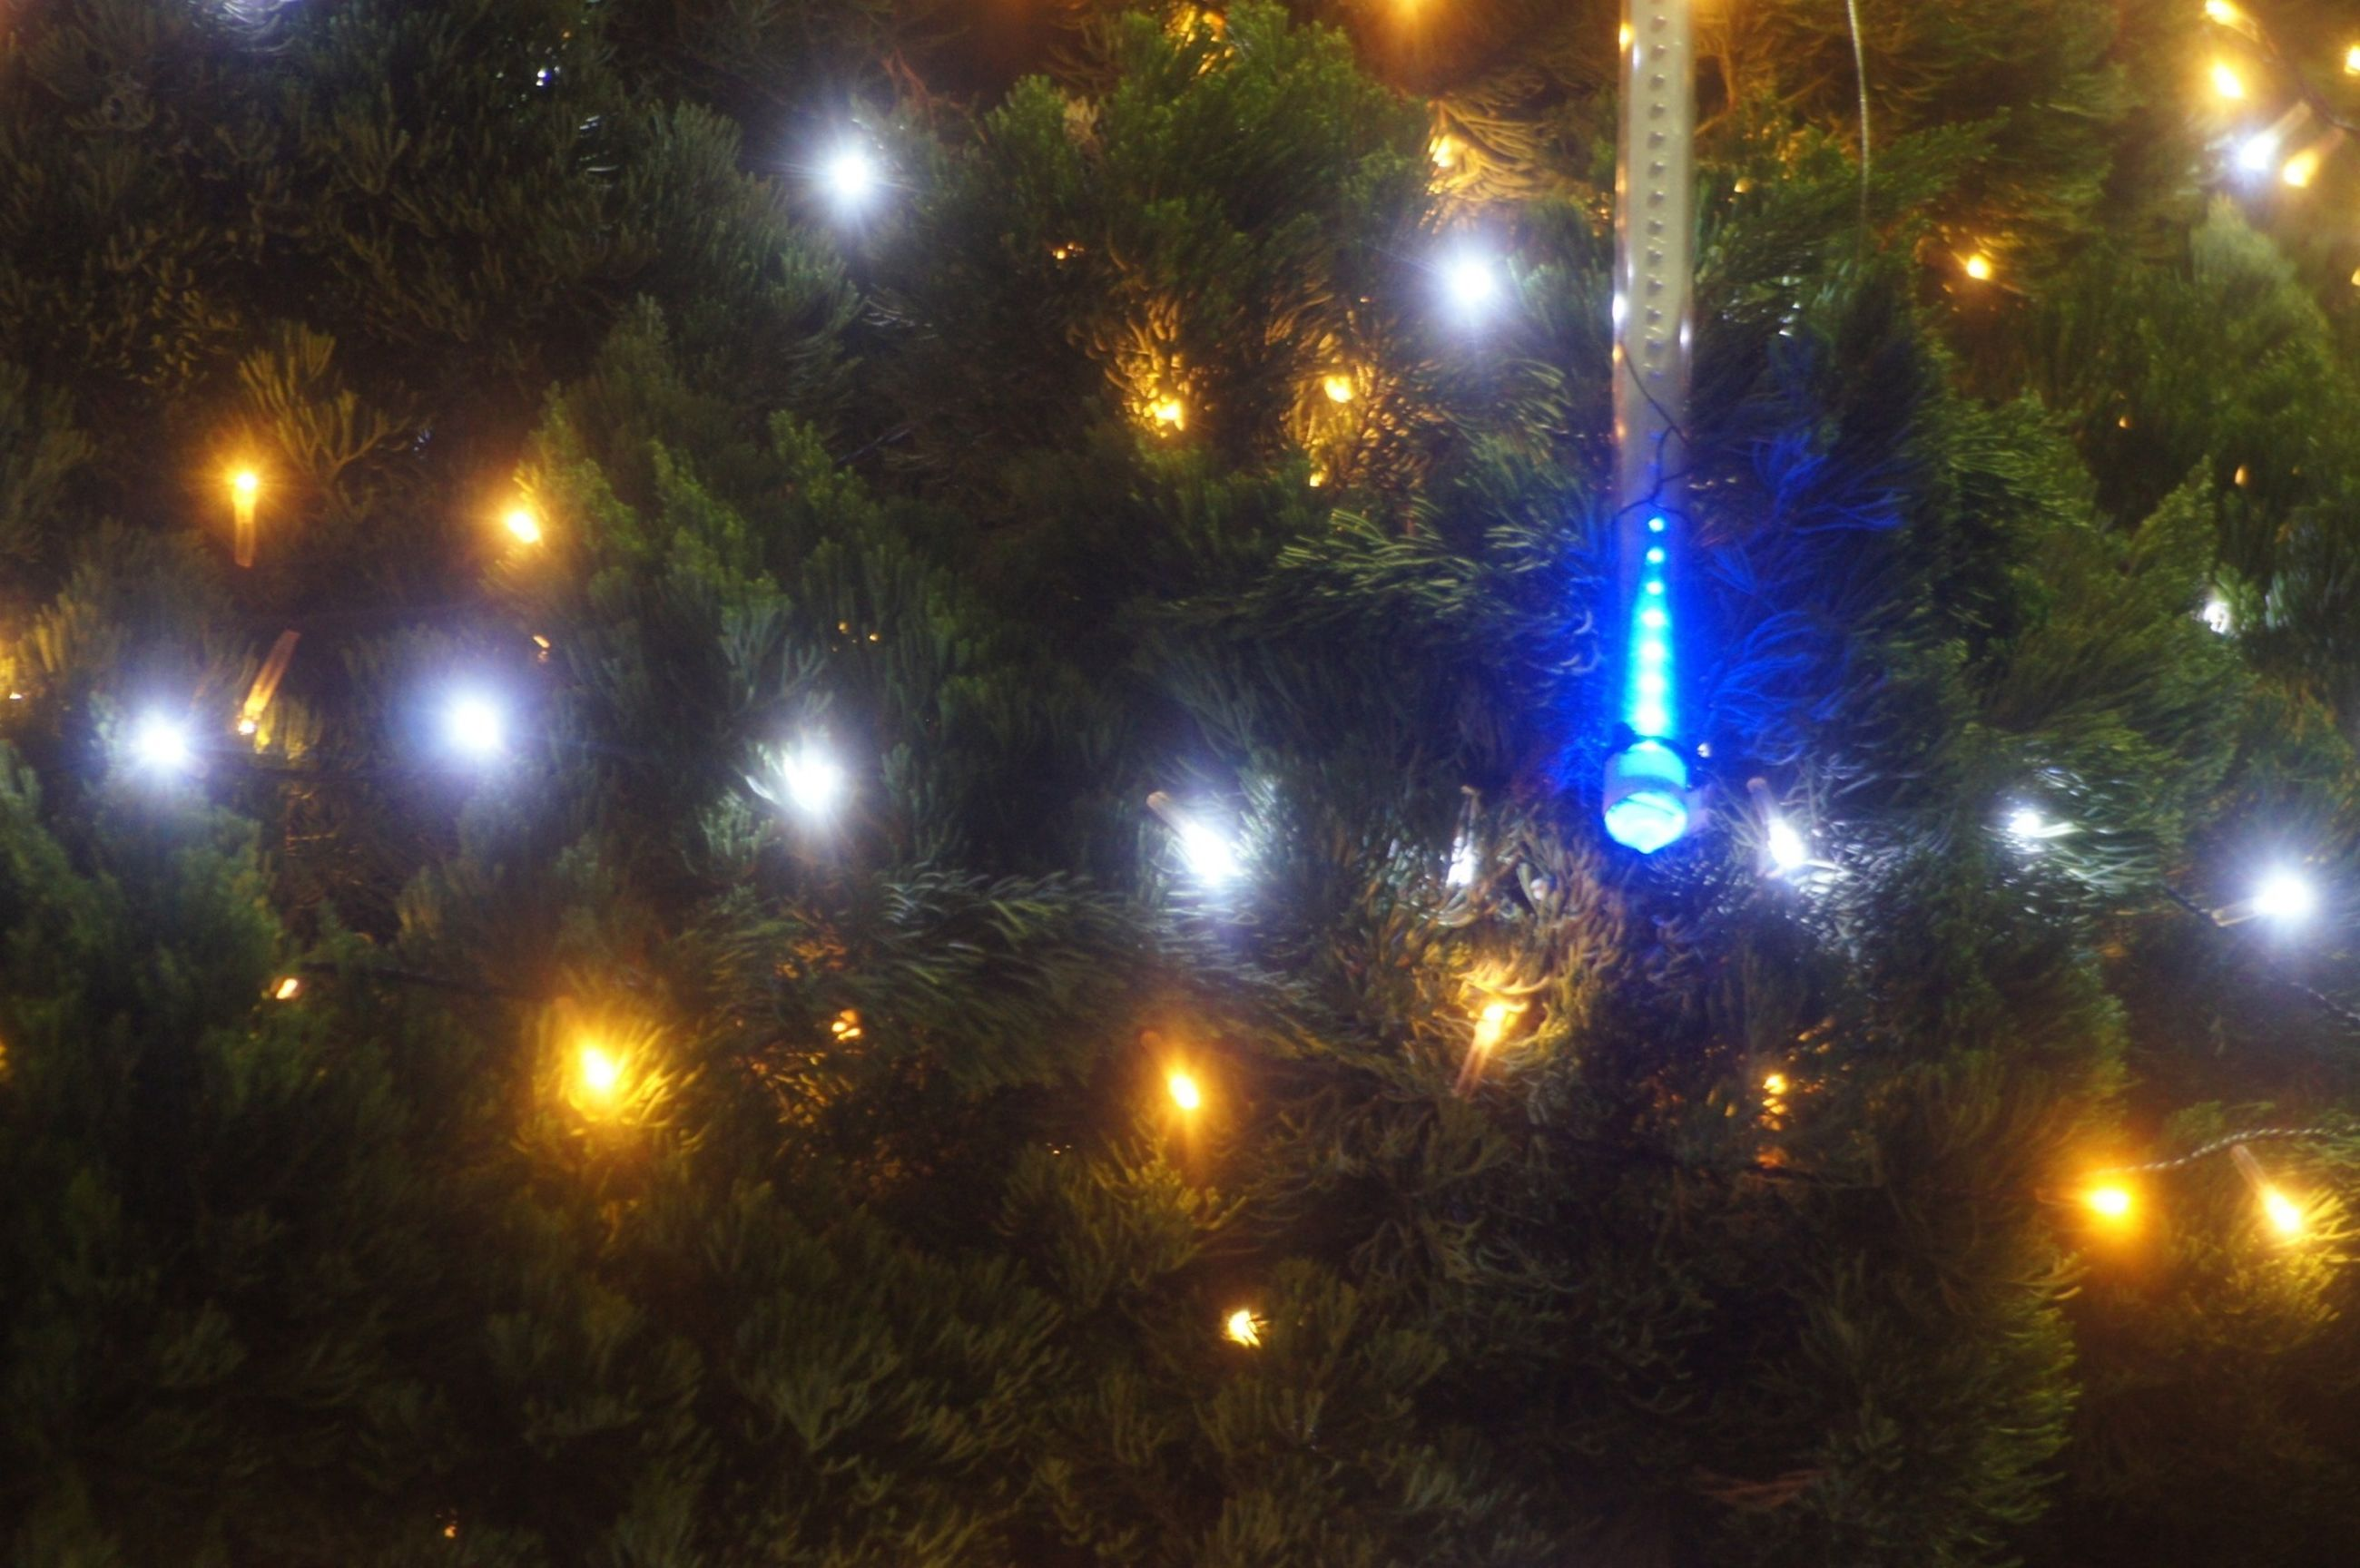 illuminated, night, lighting equipment, street light, celebration, glowing, decoration, electricity, electric light, light - natural phenomenon, christmas, city, no people, low angle view, outdoors, christmas lights, sphere, sky, dark, christmas decoration